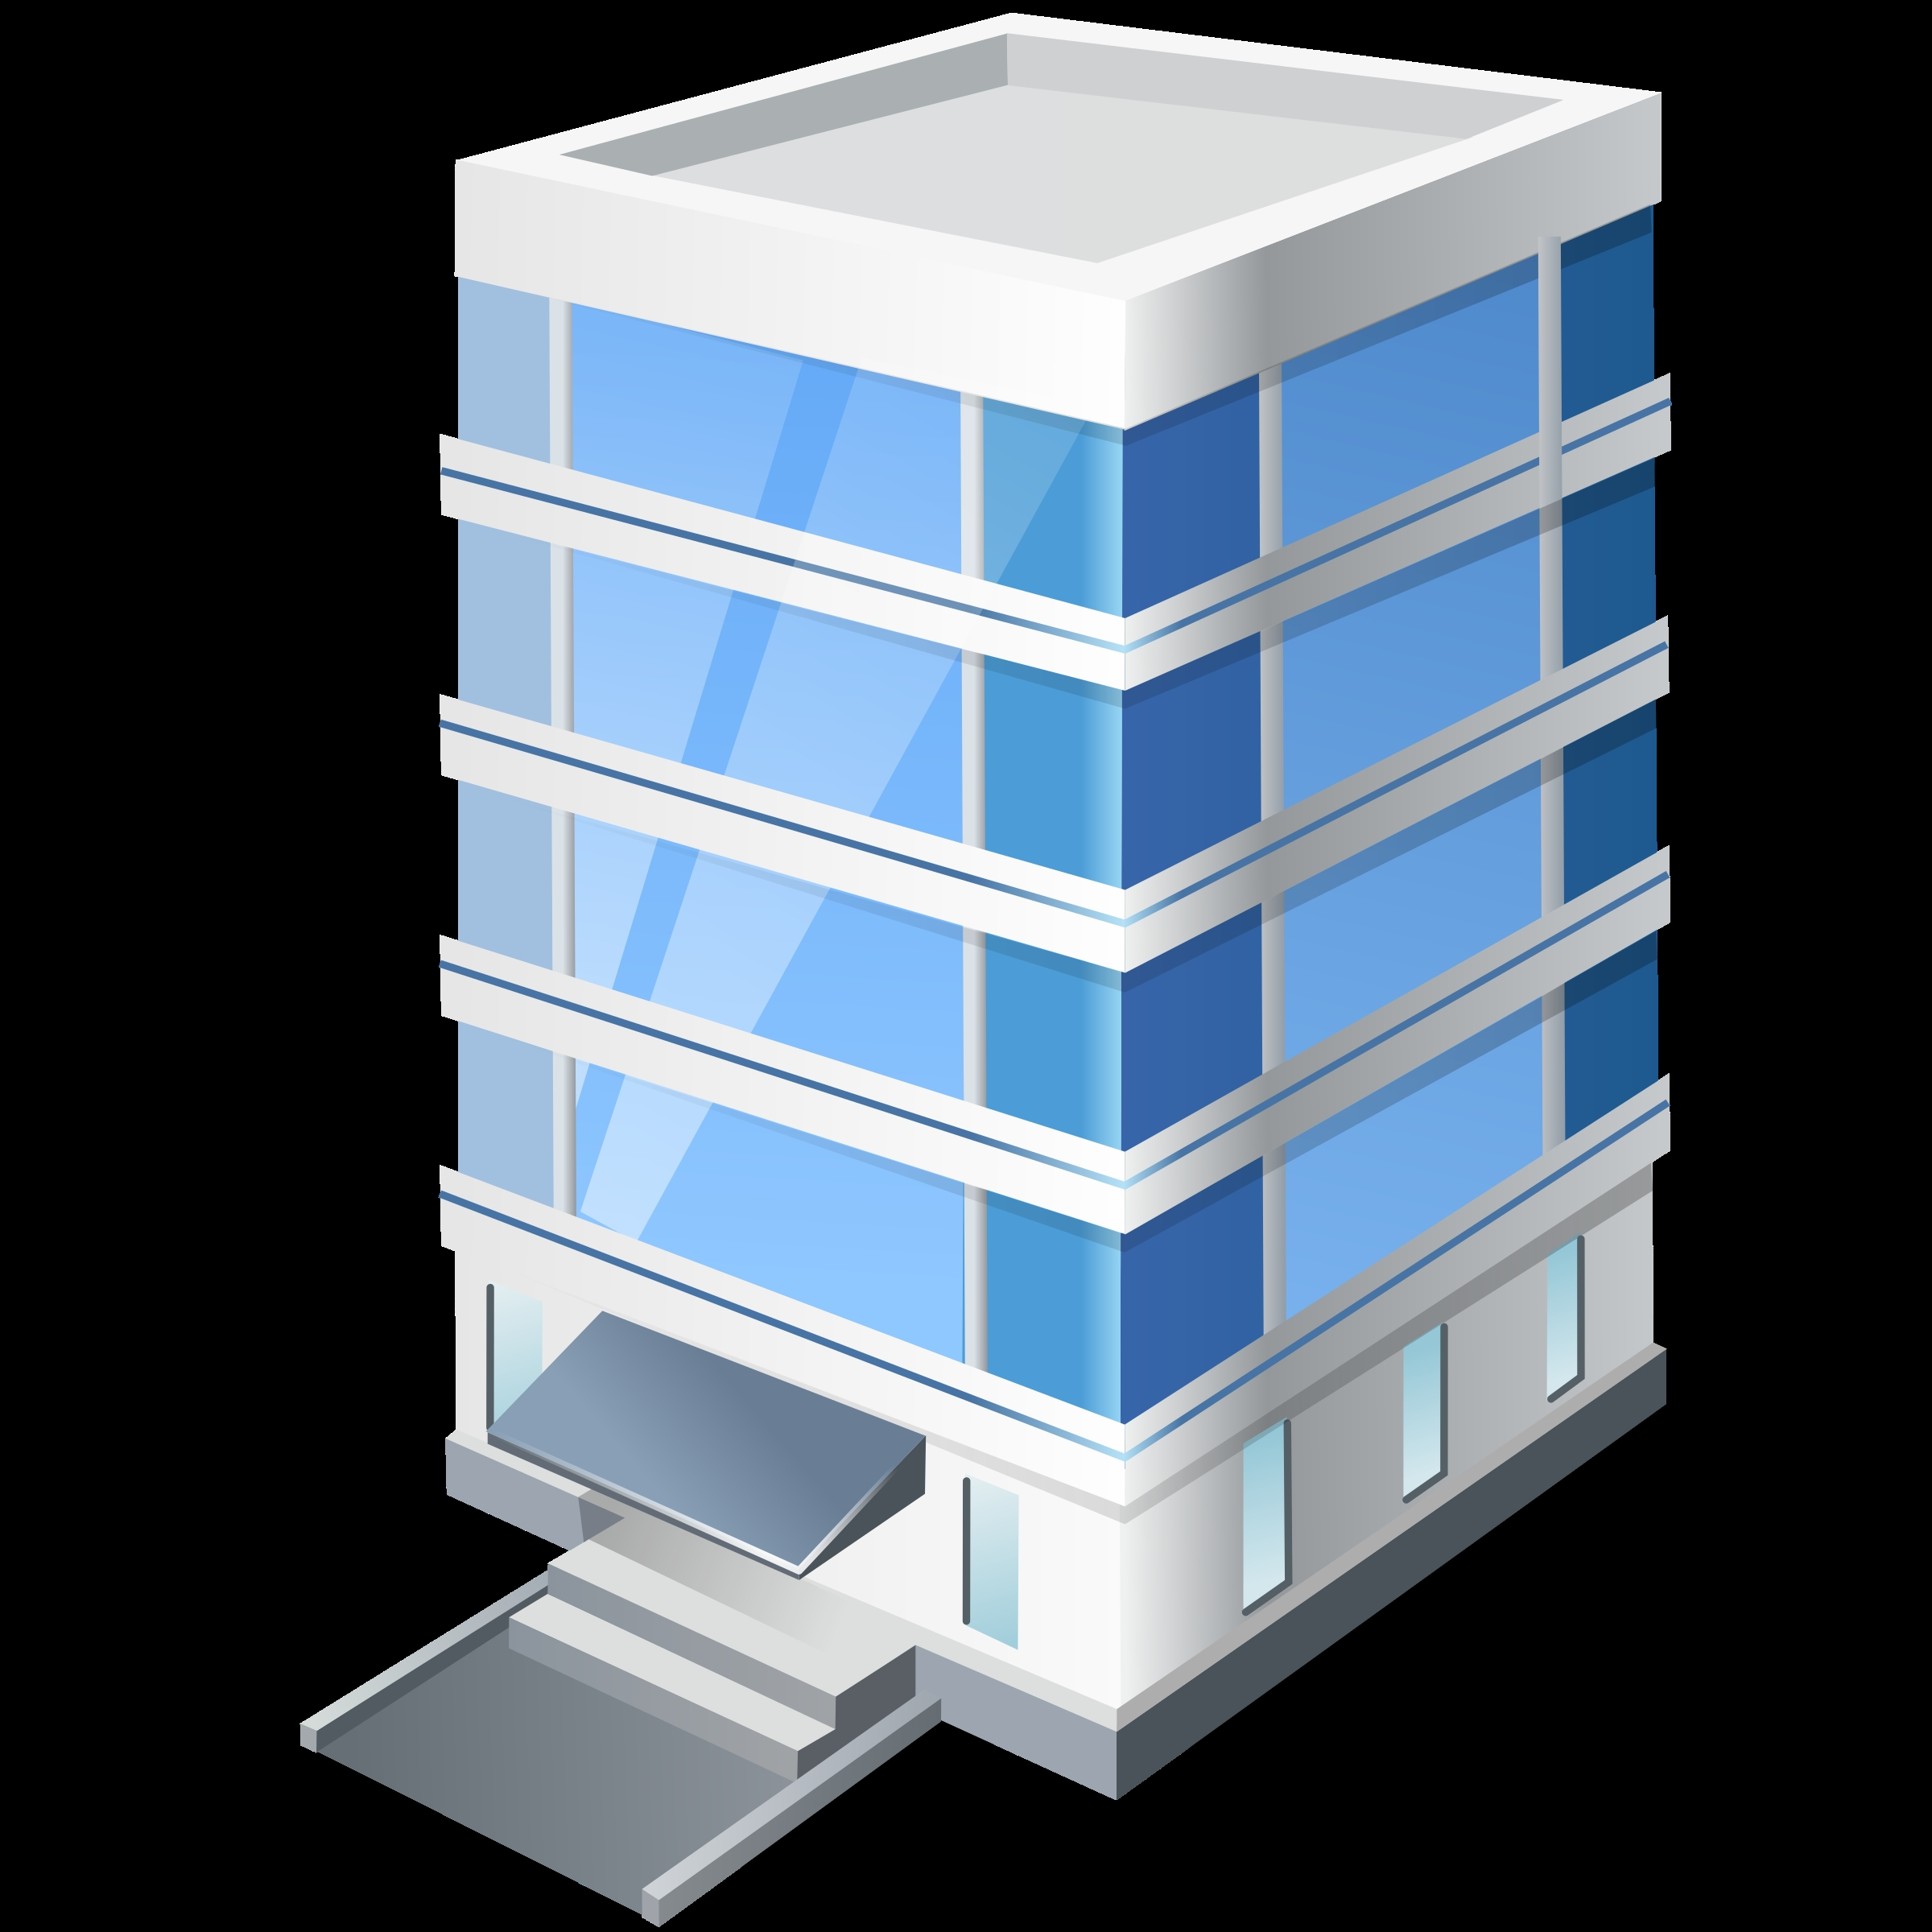 Office building clipart png picture freeuse stock Home Office : Small Office Building Clipart 3d Building Clipart ... picture freeuse stock